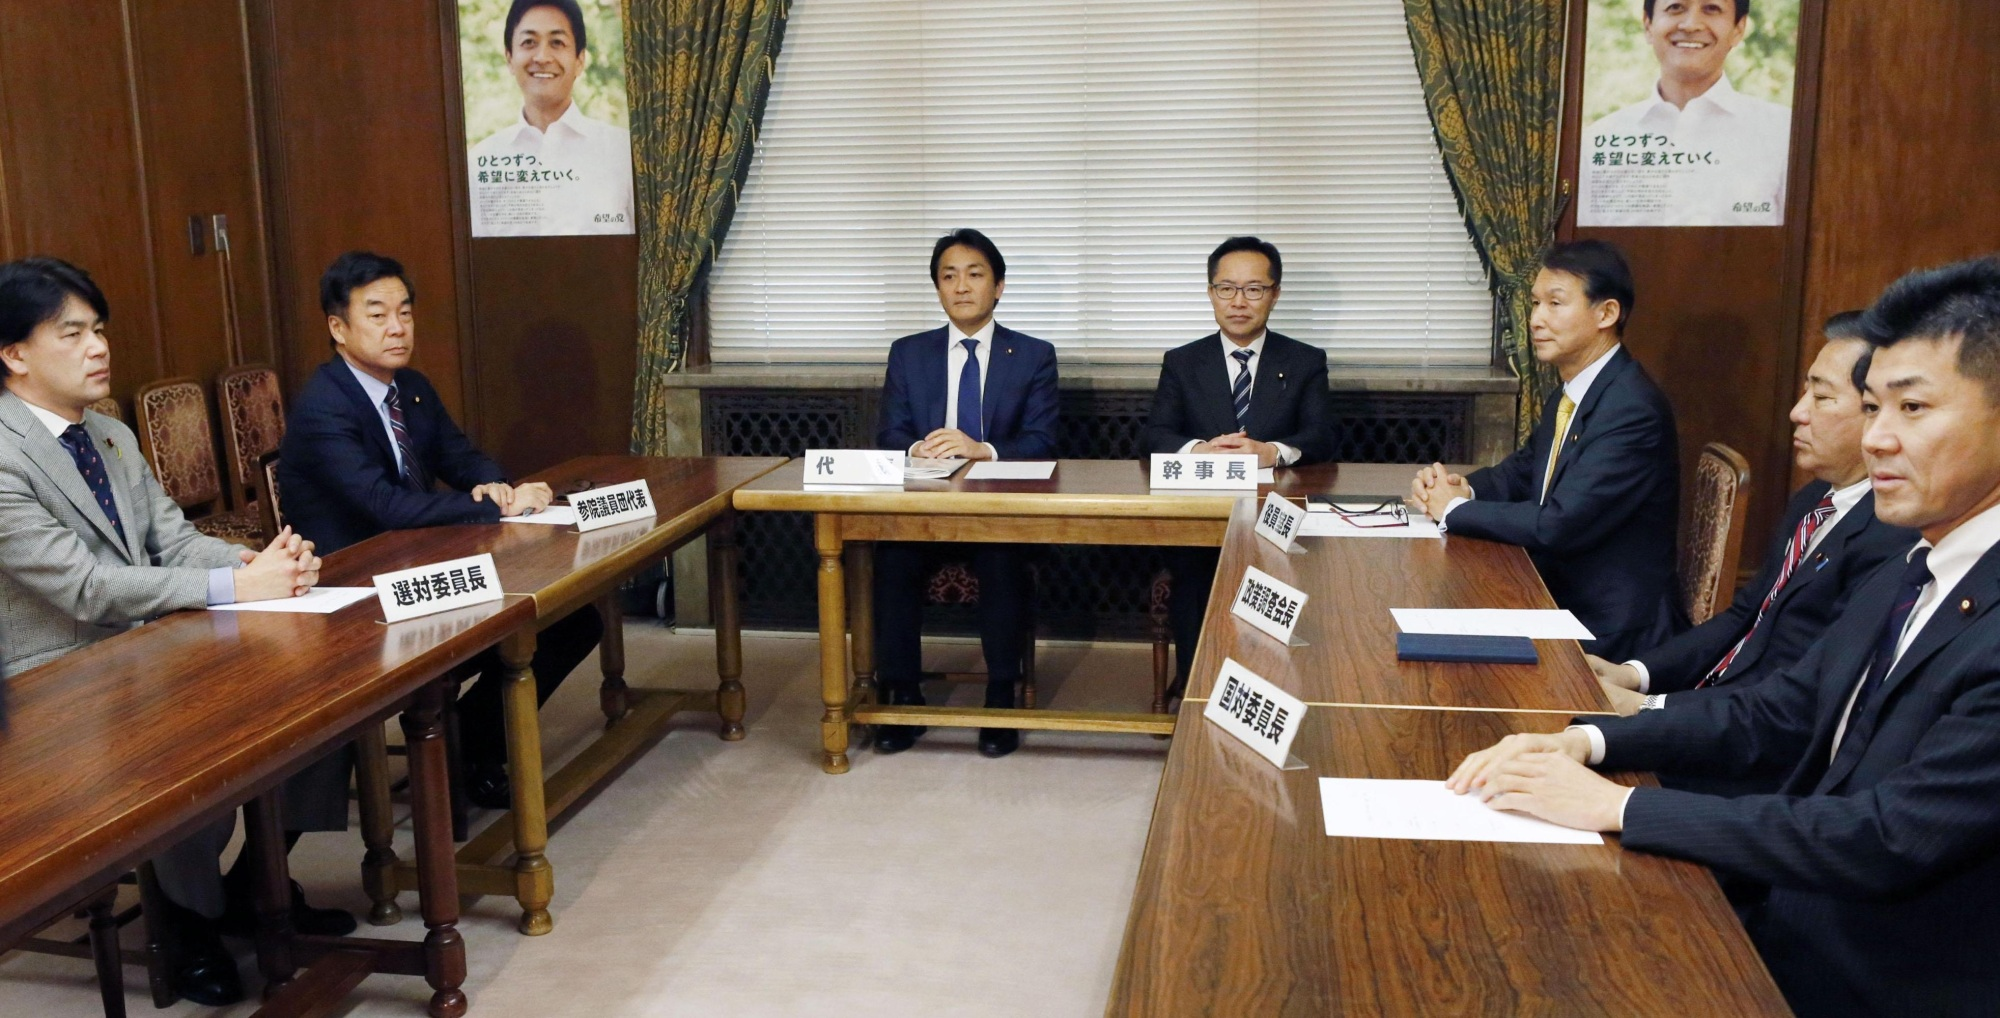 Shigefumi Matsuzawa (second from left), who heads Kibo no To (Party of Hope) in the Upper House, and Yuichiro Tamaki (third from left), leader of the party, gather at an emergency meeting of the party executive at the Diet on Wednesday. | KYODO